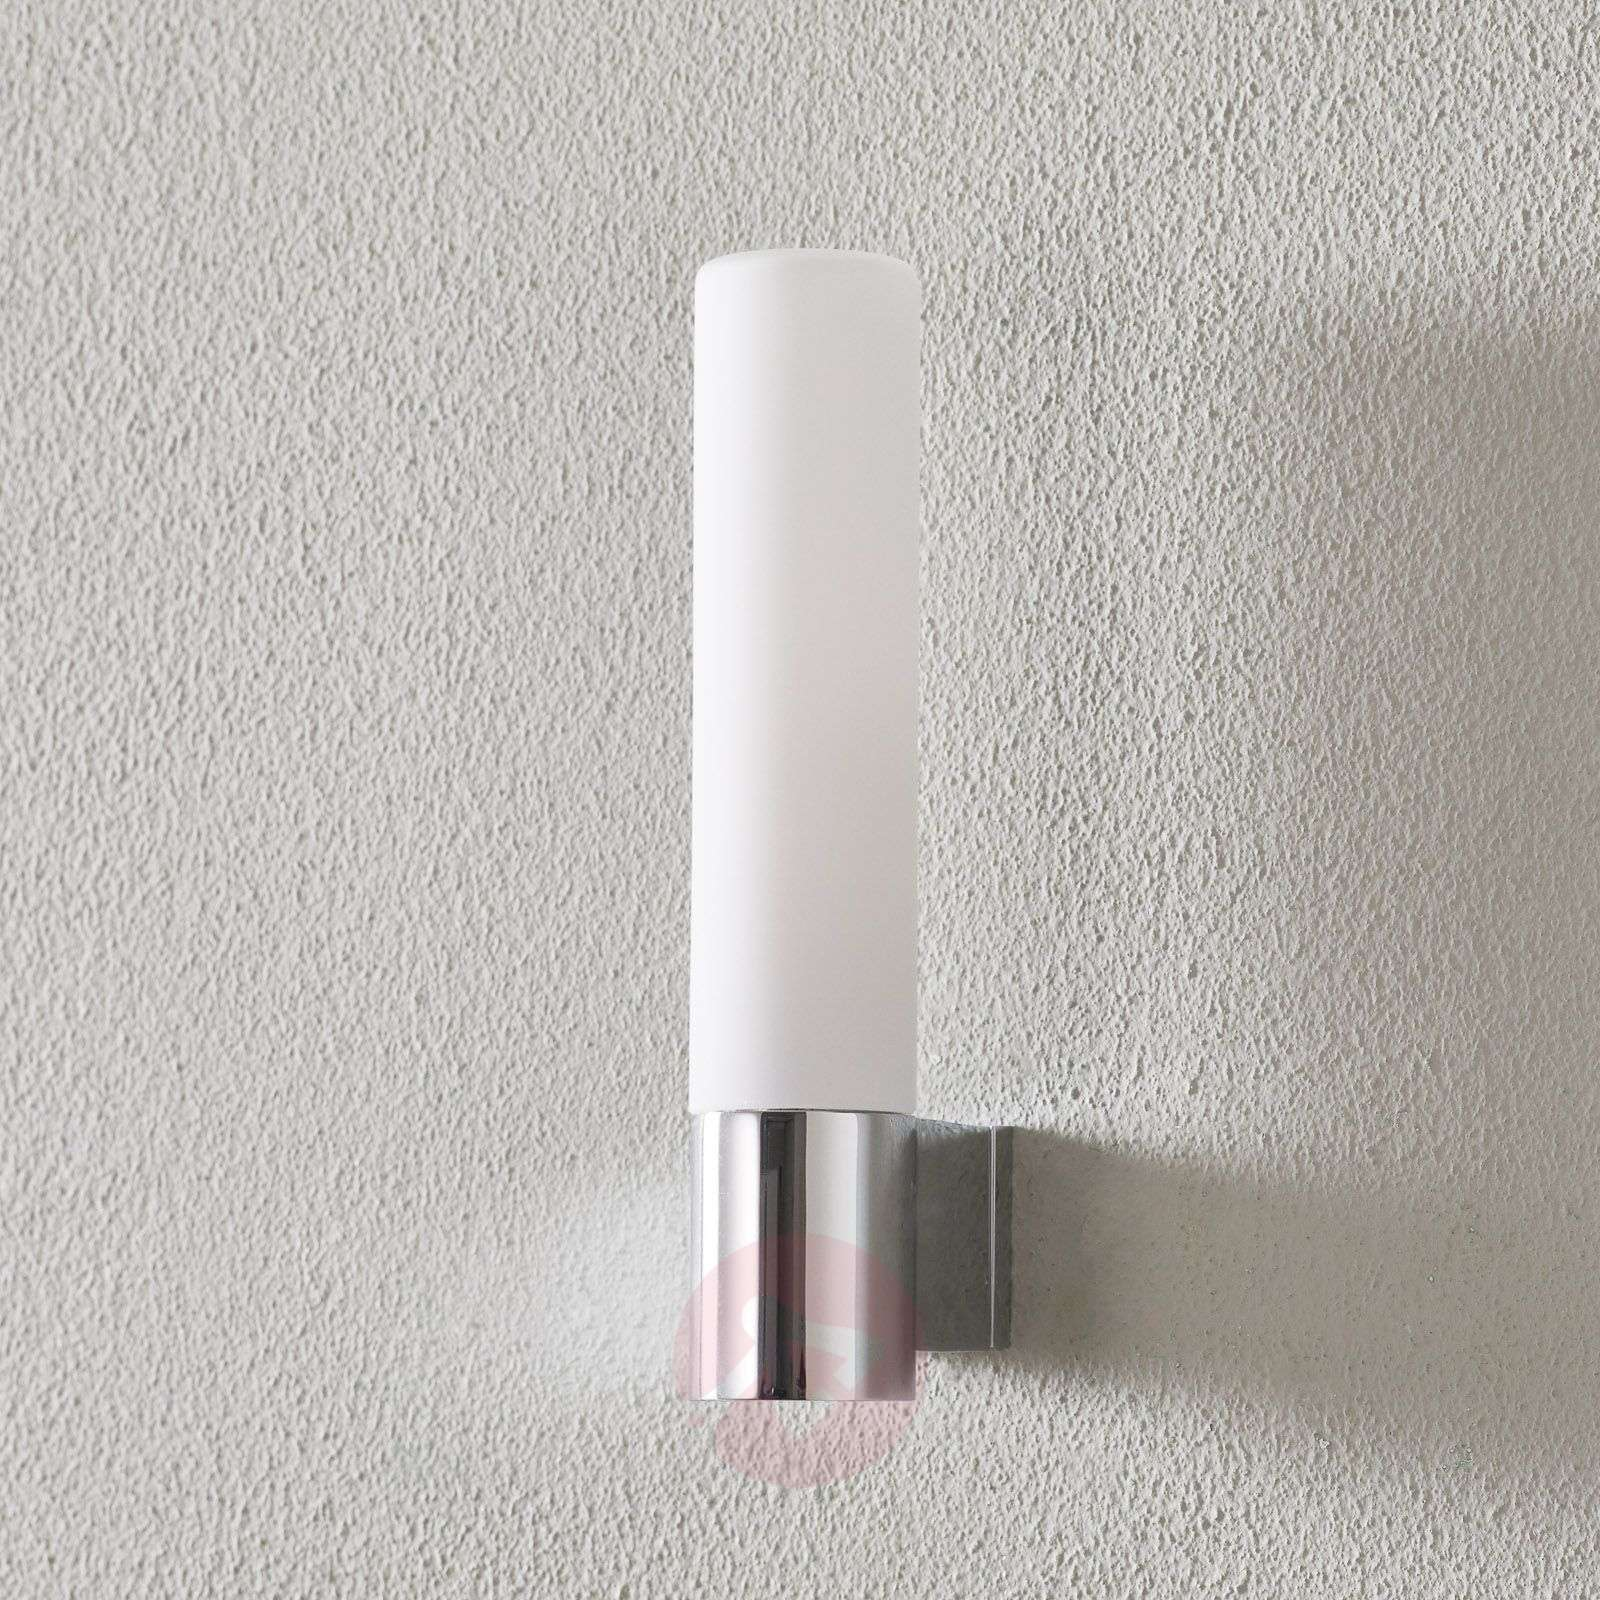 Astro Bari bathroom wall light, chrome-1020012-02